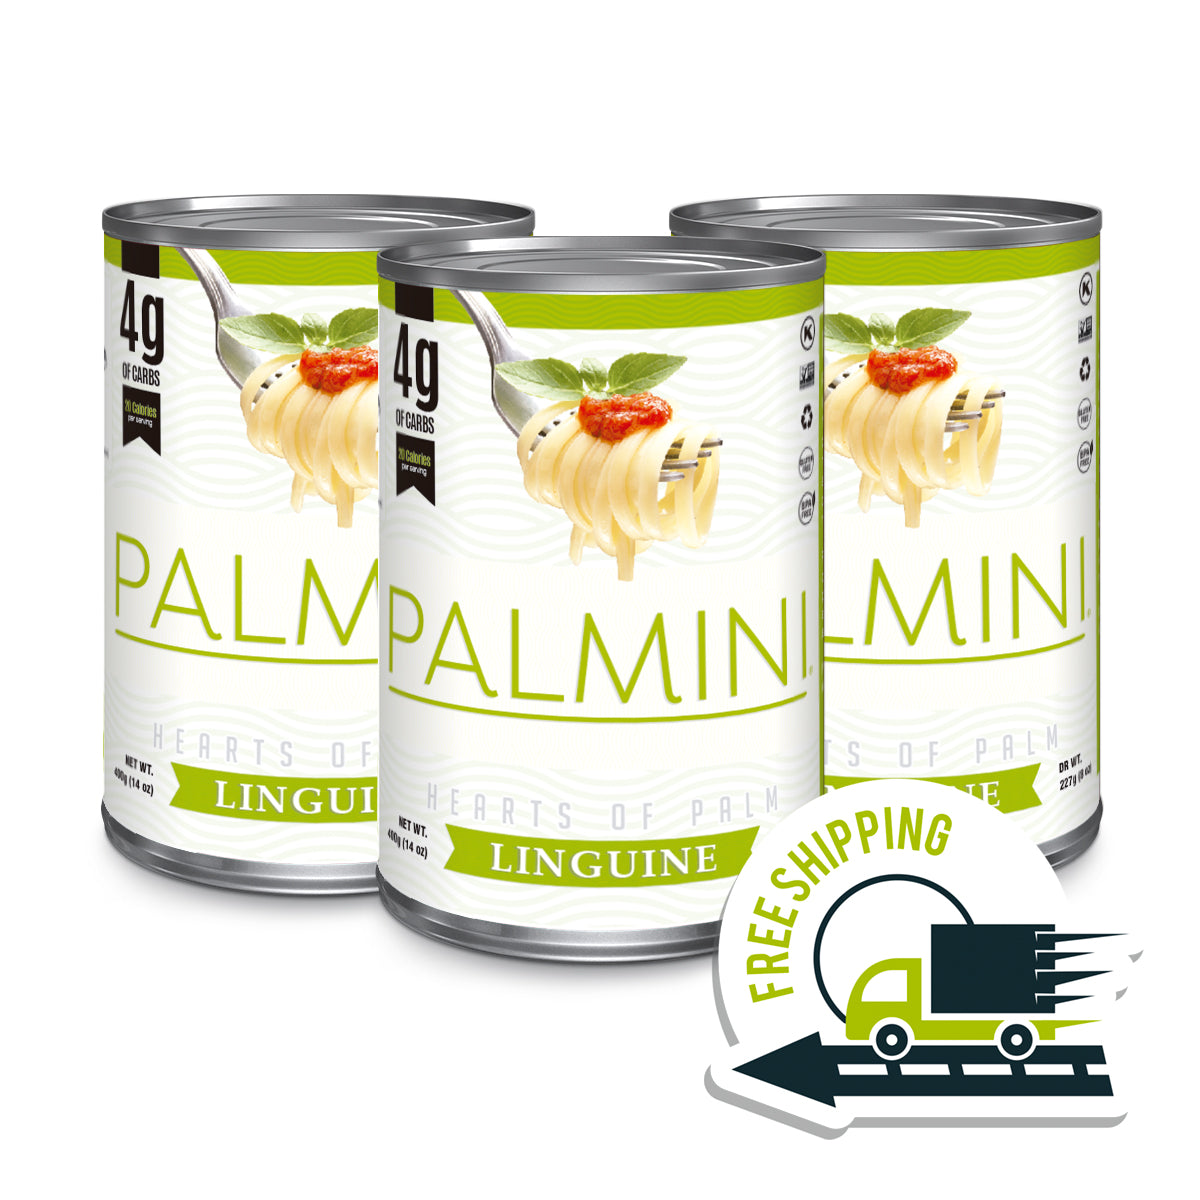 Palmini Linguine | 3 Unit Case | 14 Oz. Net |